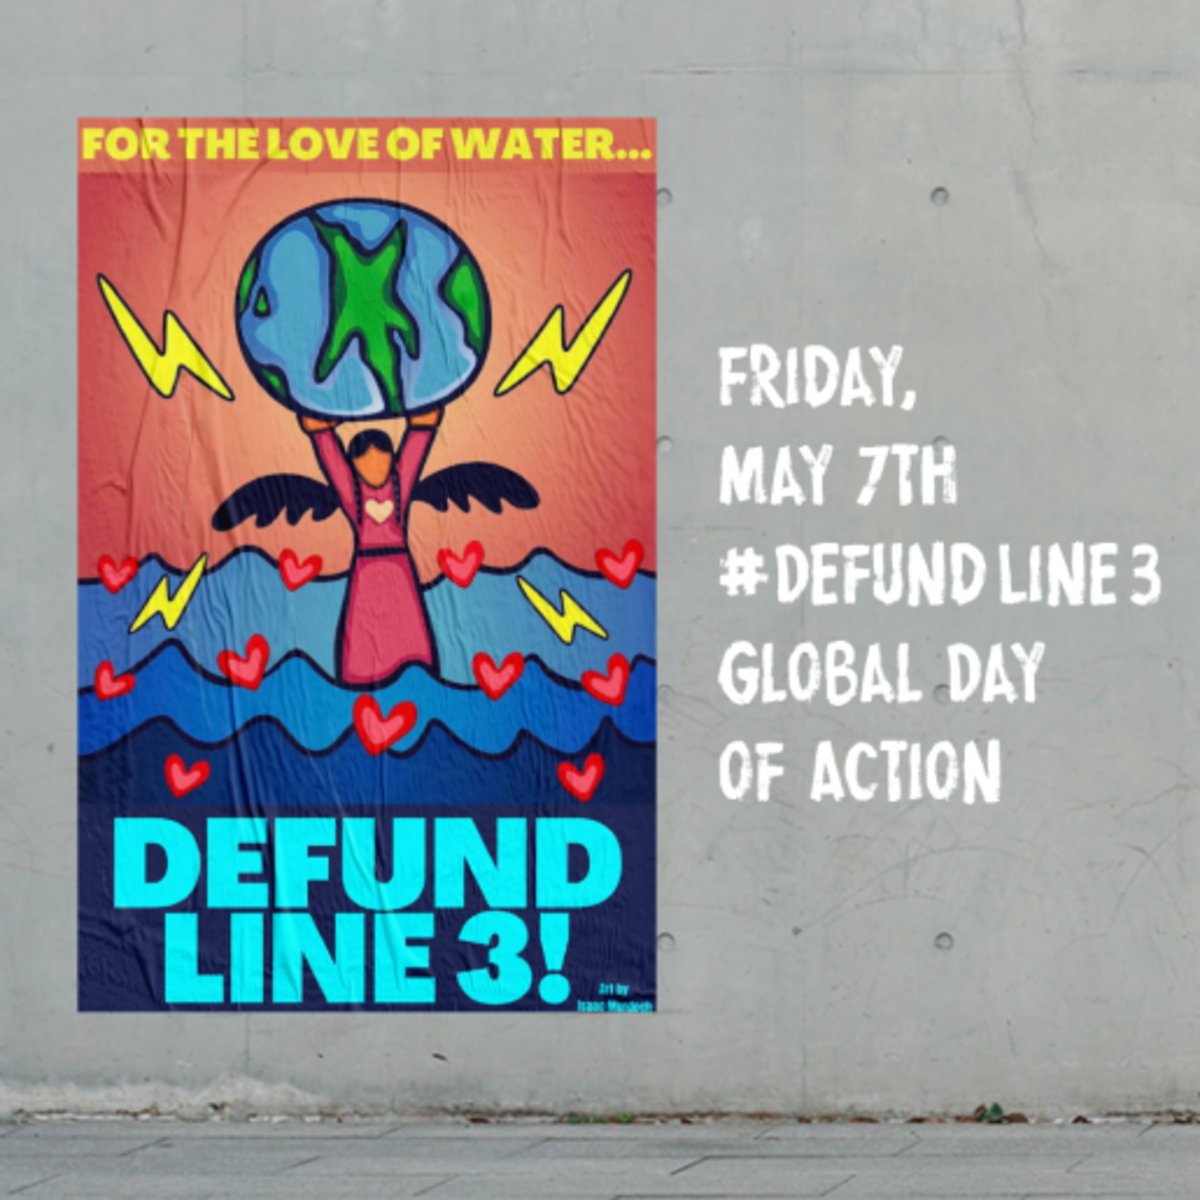 May 7, 2021 is the #DefundLine3 Global Day of Action.